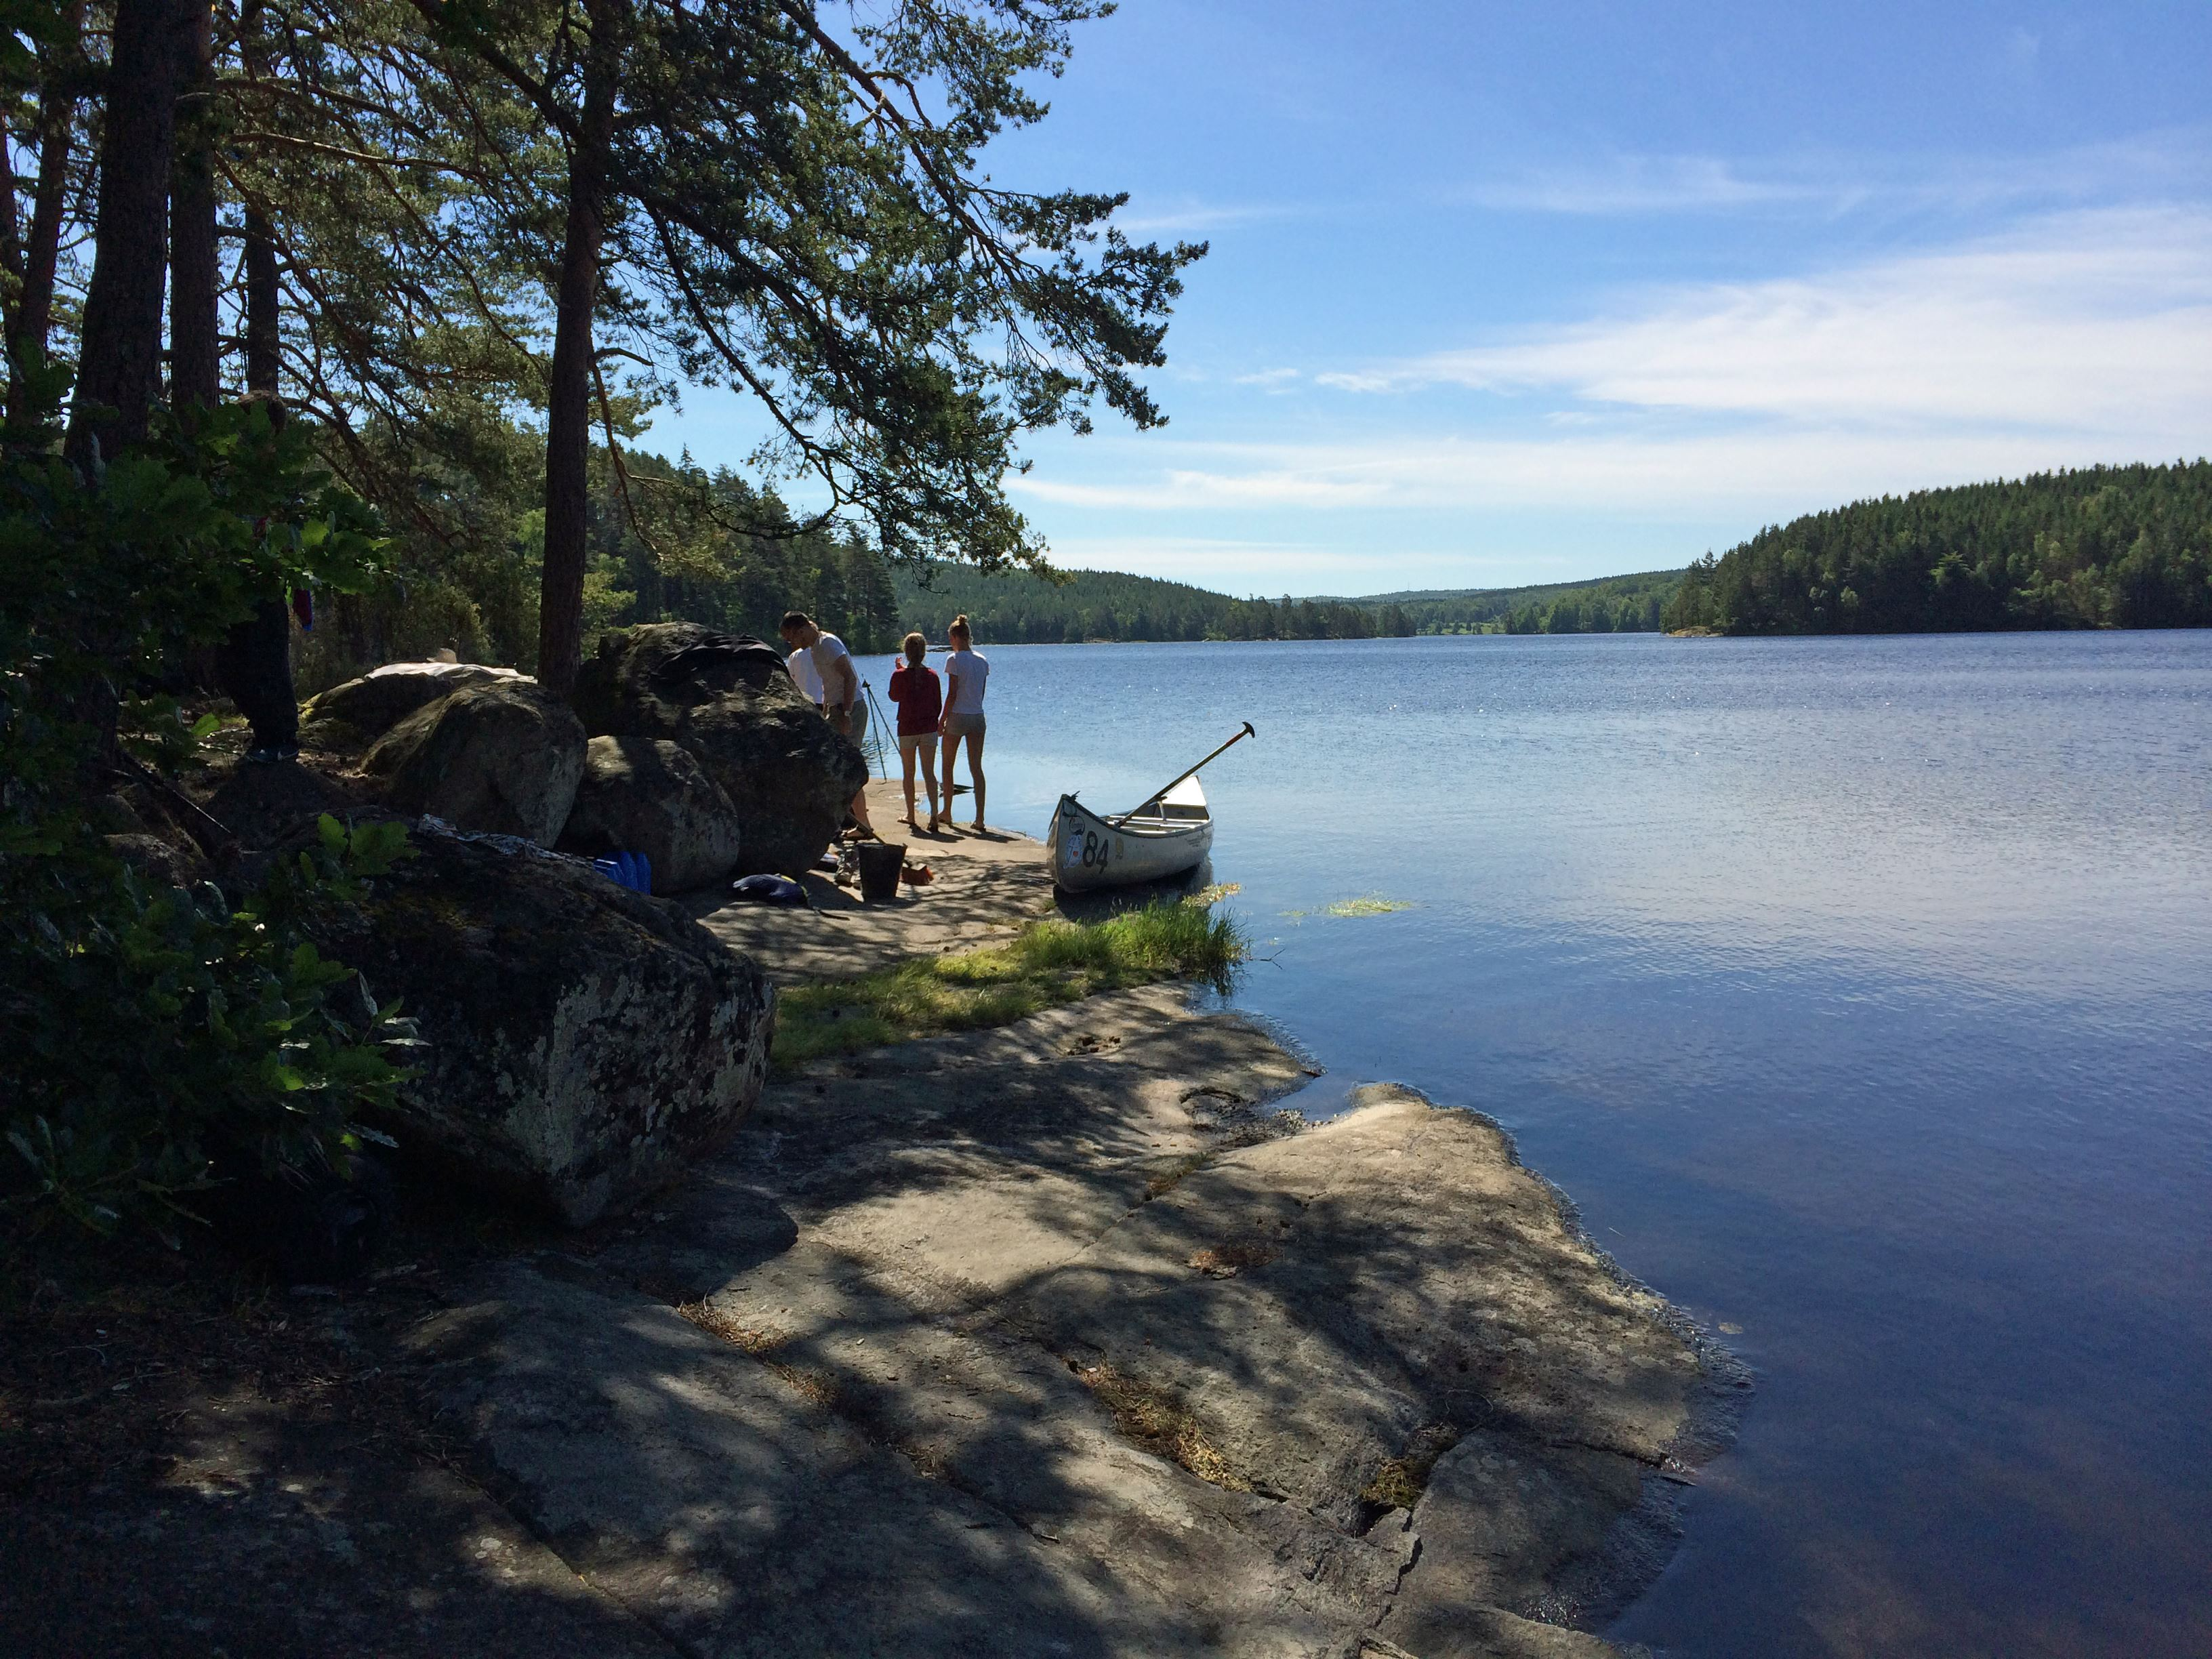 Canoeing in Blekinge's biggest lake Halen